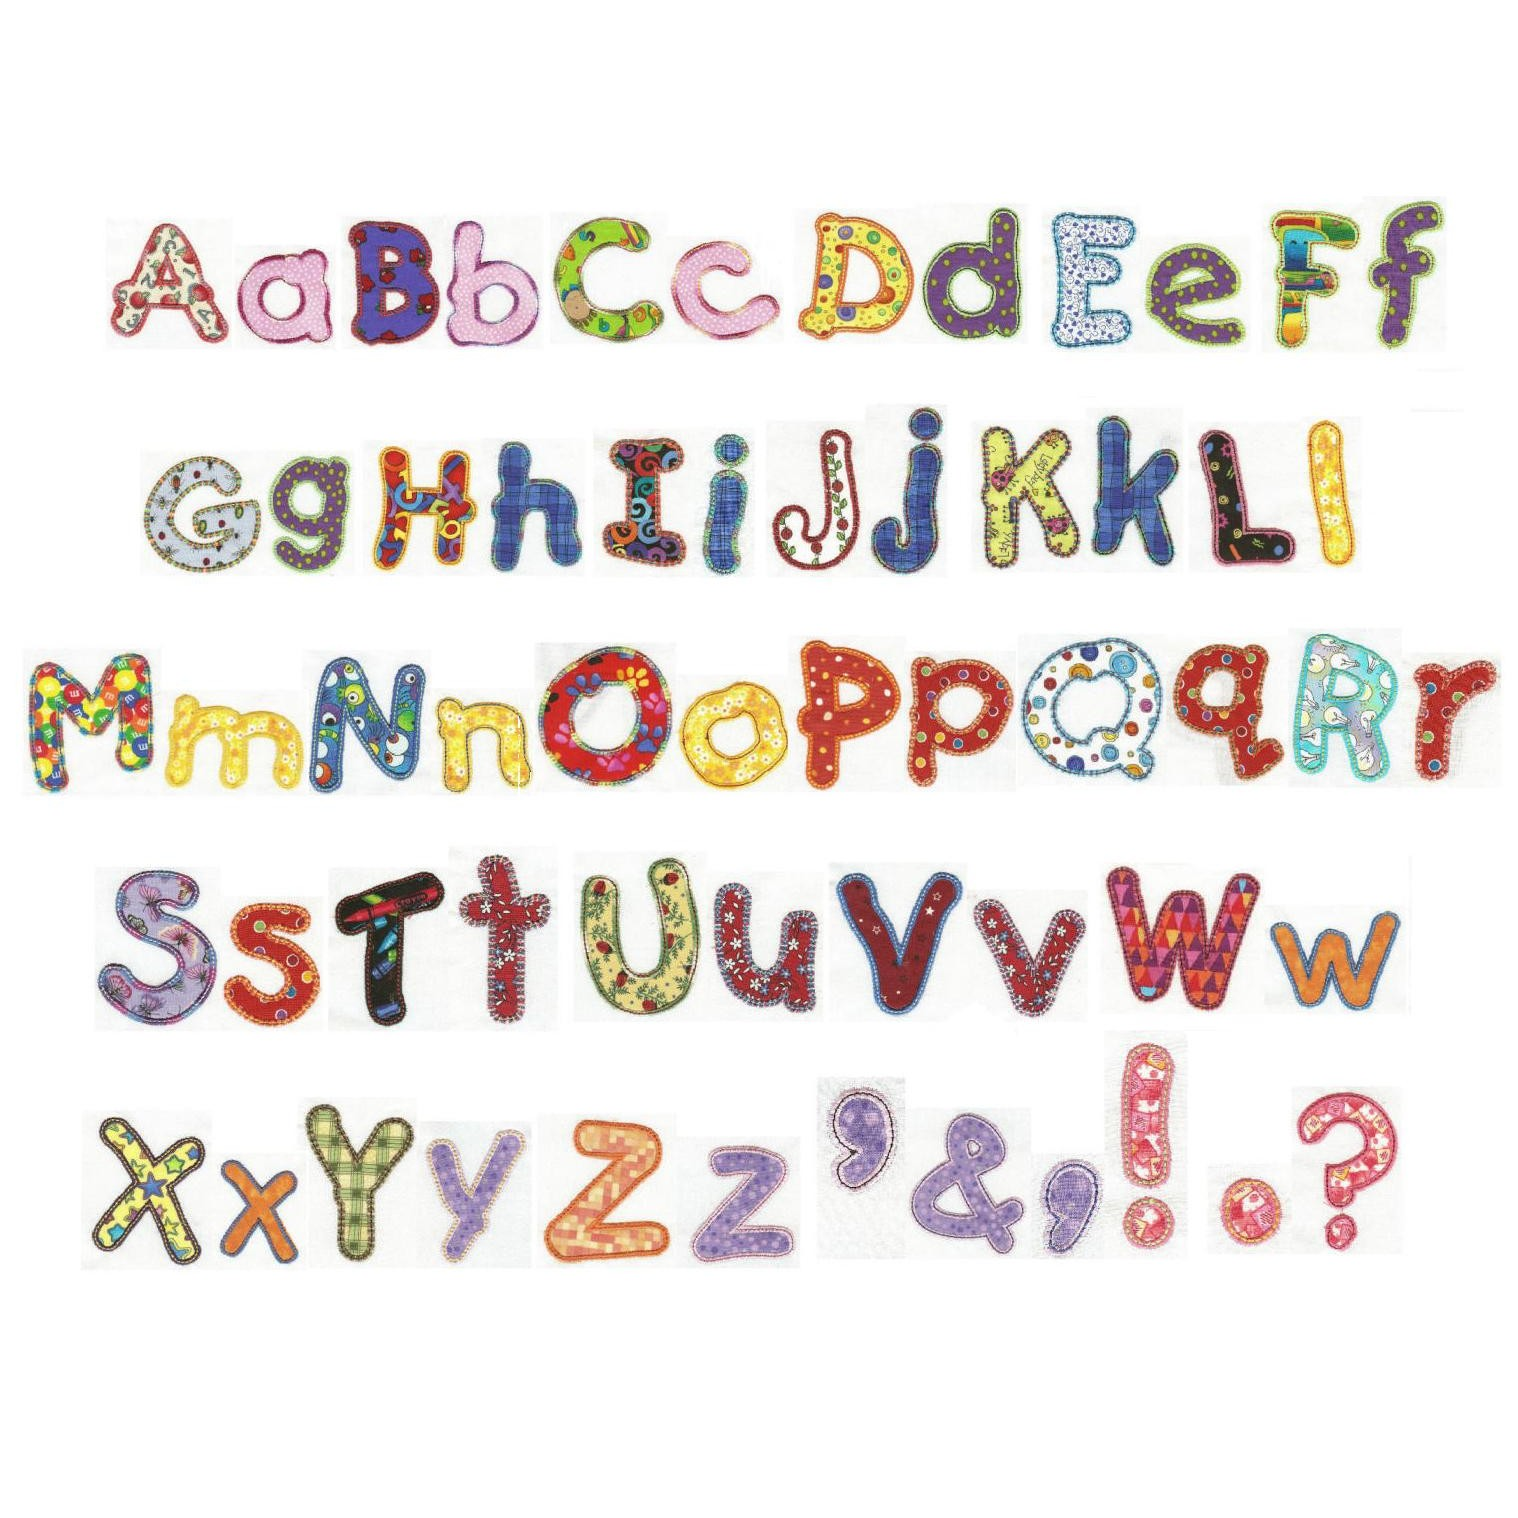 14 Machine Embroidery Designs Applique Alphabet Images - Free